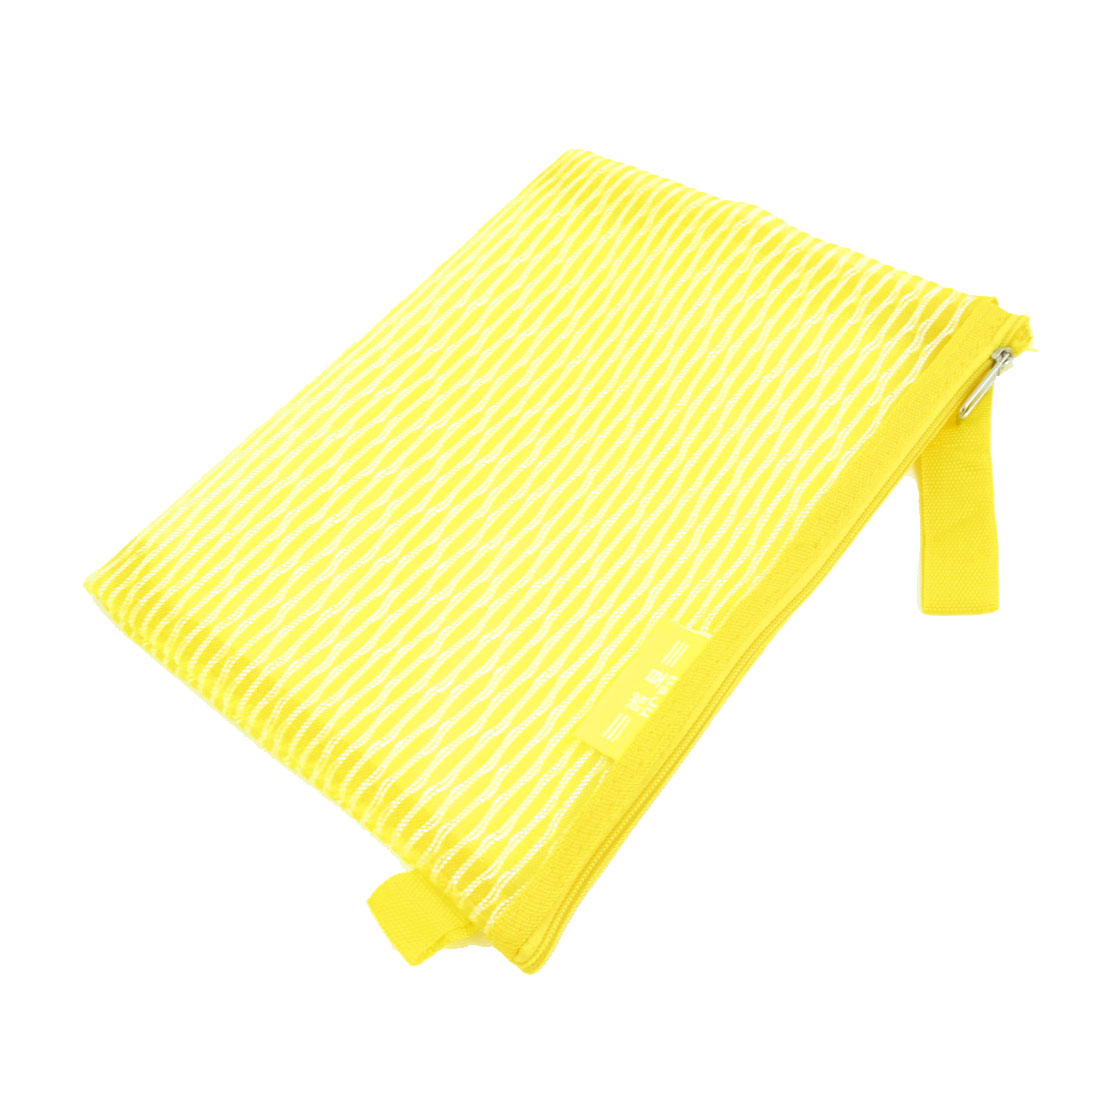 Zip Up Gridding A5 Paper Pen Pencil File Case Bag Holder Yellow